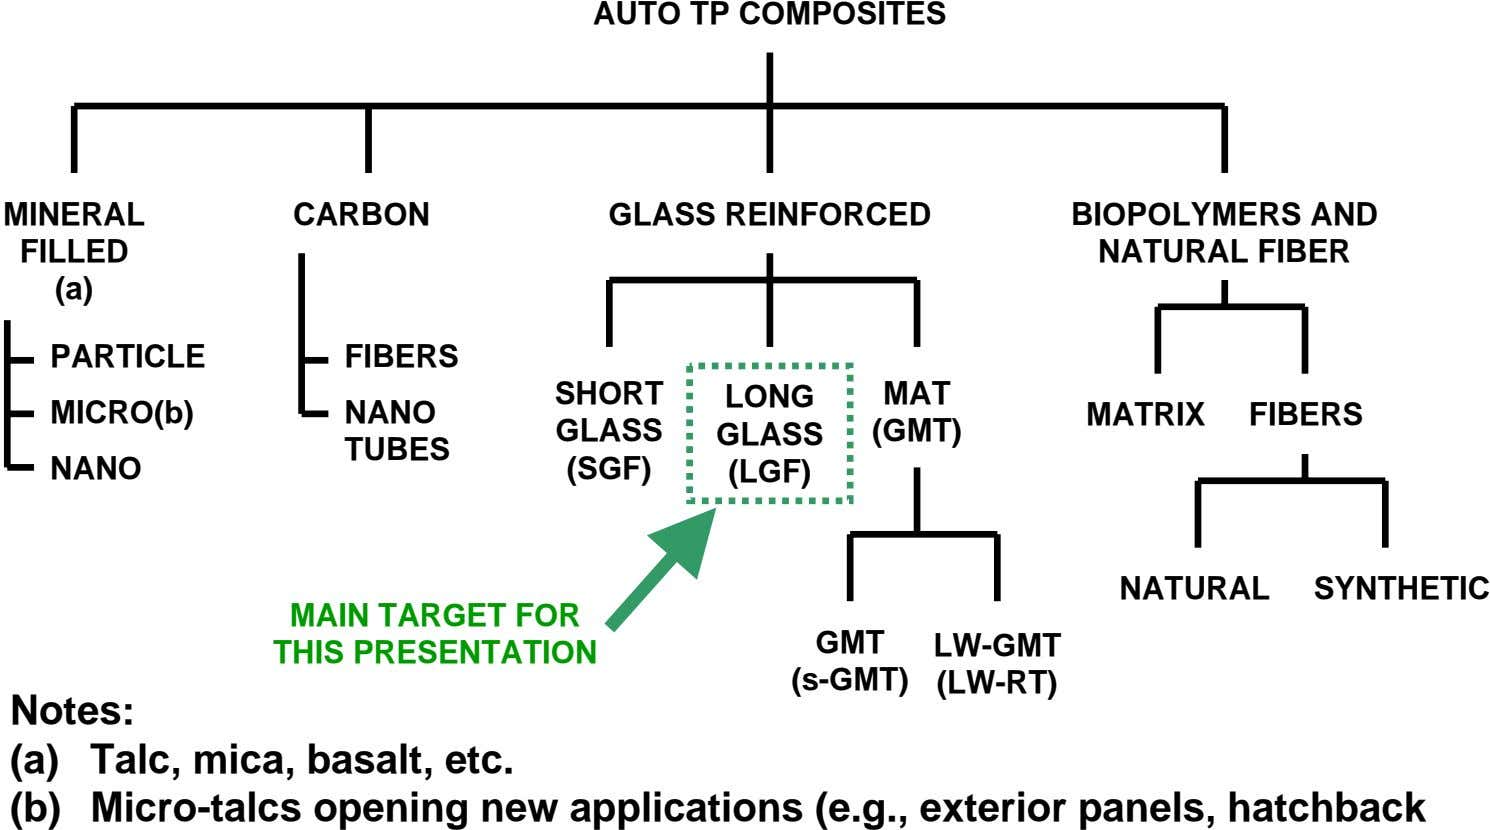 AUTO TP COMPOSITES MINERAL CARBON GLASS REINFORCED FILLED BIOPOLYMERS AND NATURAL FIBER (a) PARTICLE FIBERS